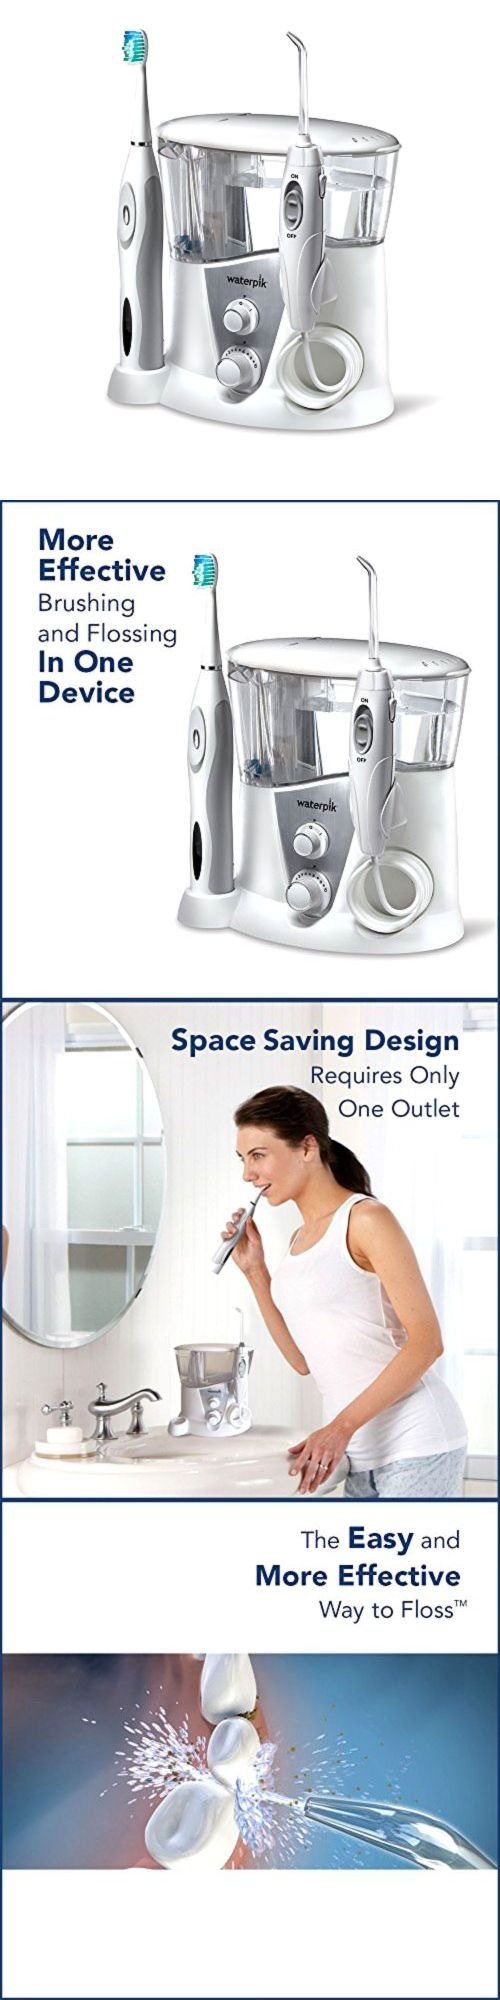 25 best ideas about oral b sonic complete on pinterest oral b sonic daily mail newspaper. Black Bedroom Furniture Sets. Home Design Ideas